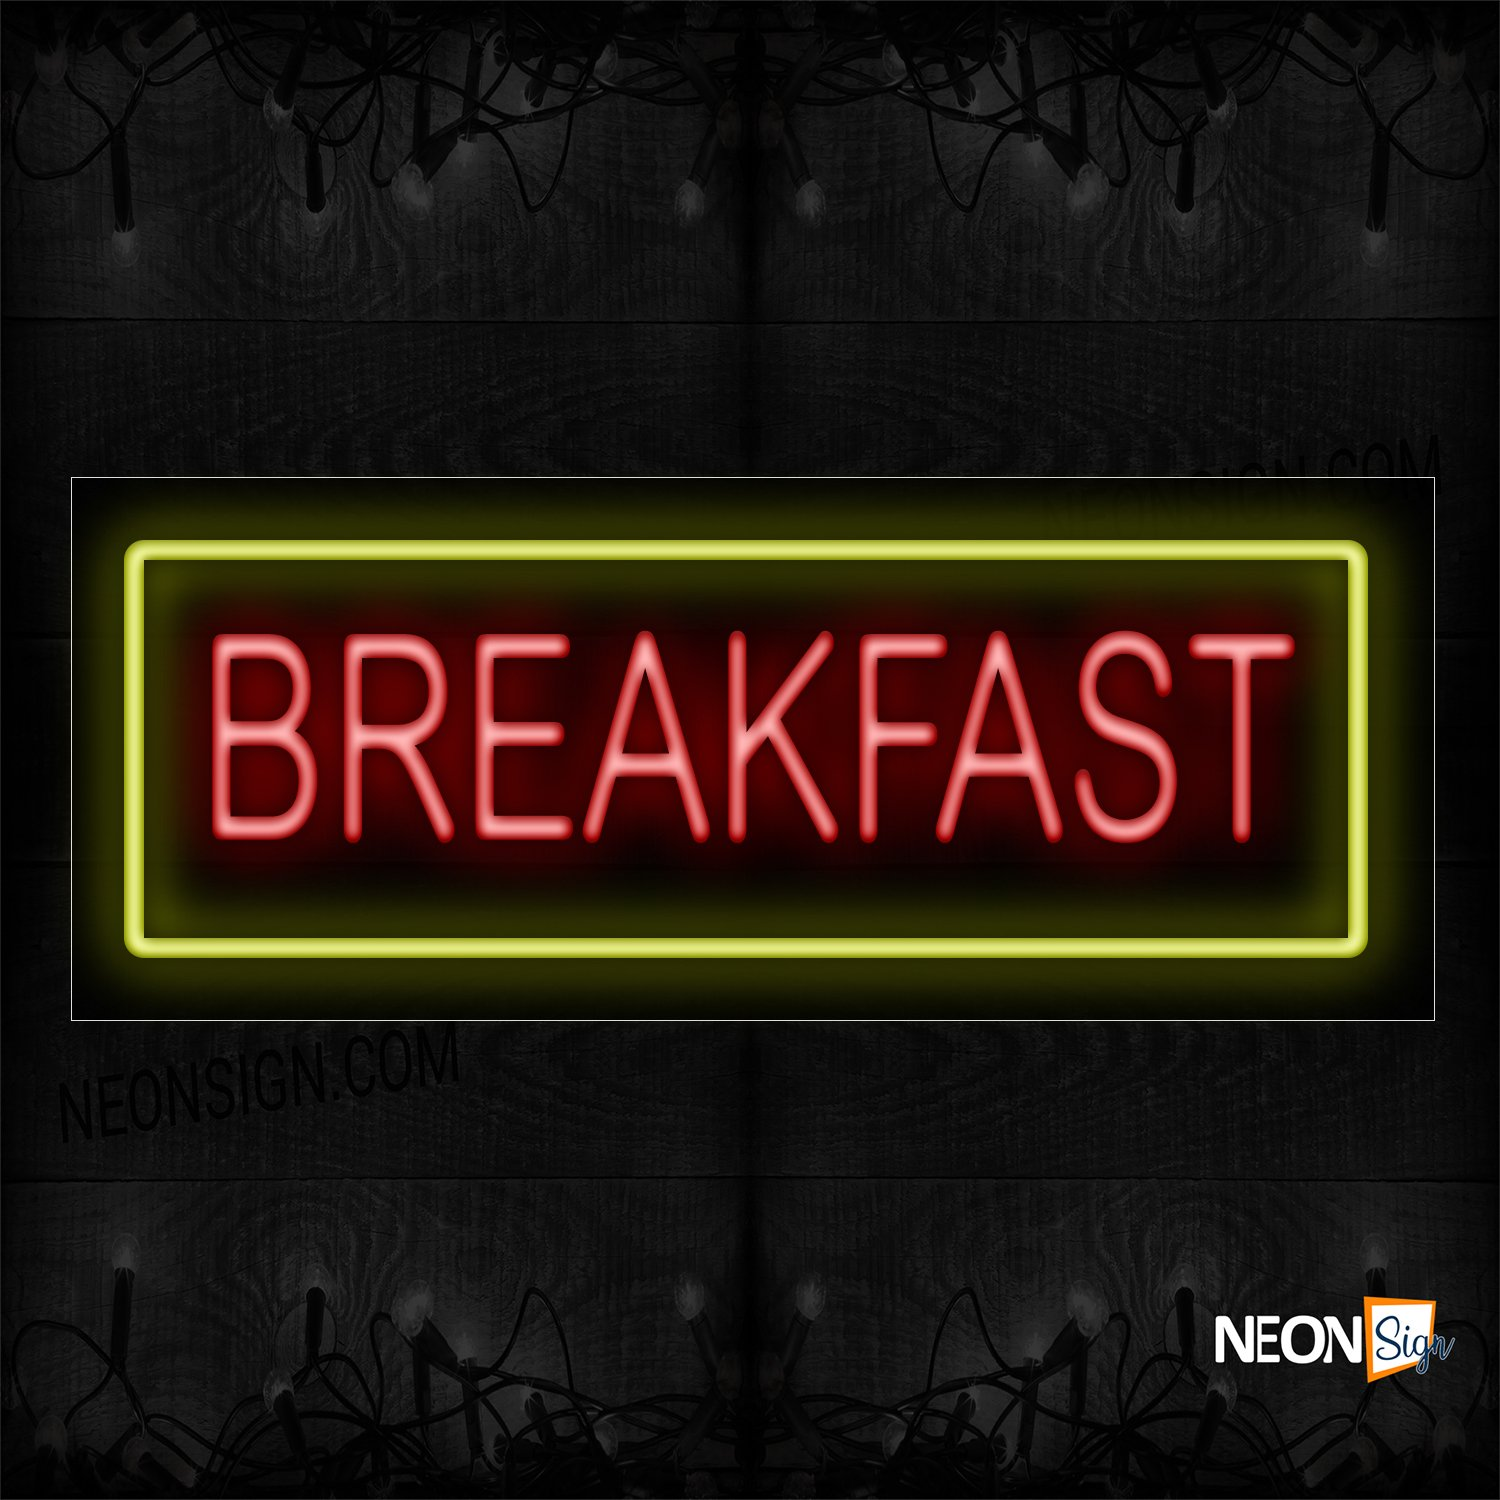 Image of 10182 Breakfast In Red With Yellow Border Neon Sign_13x32 Black Backing